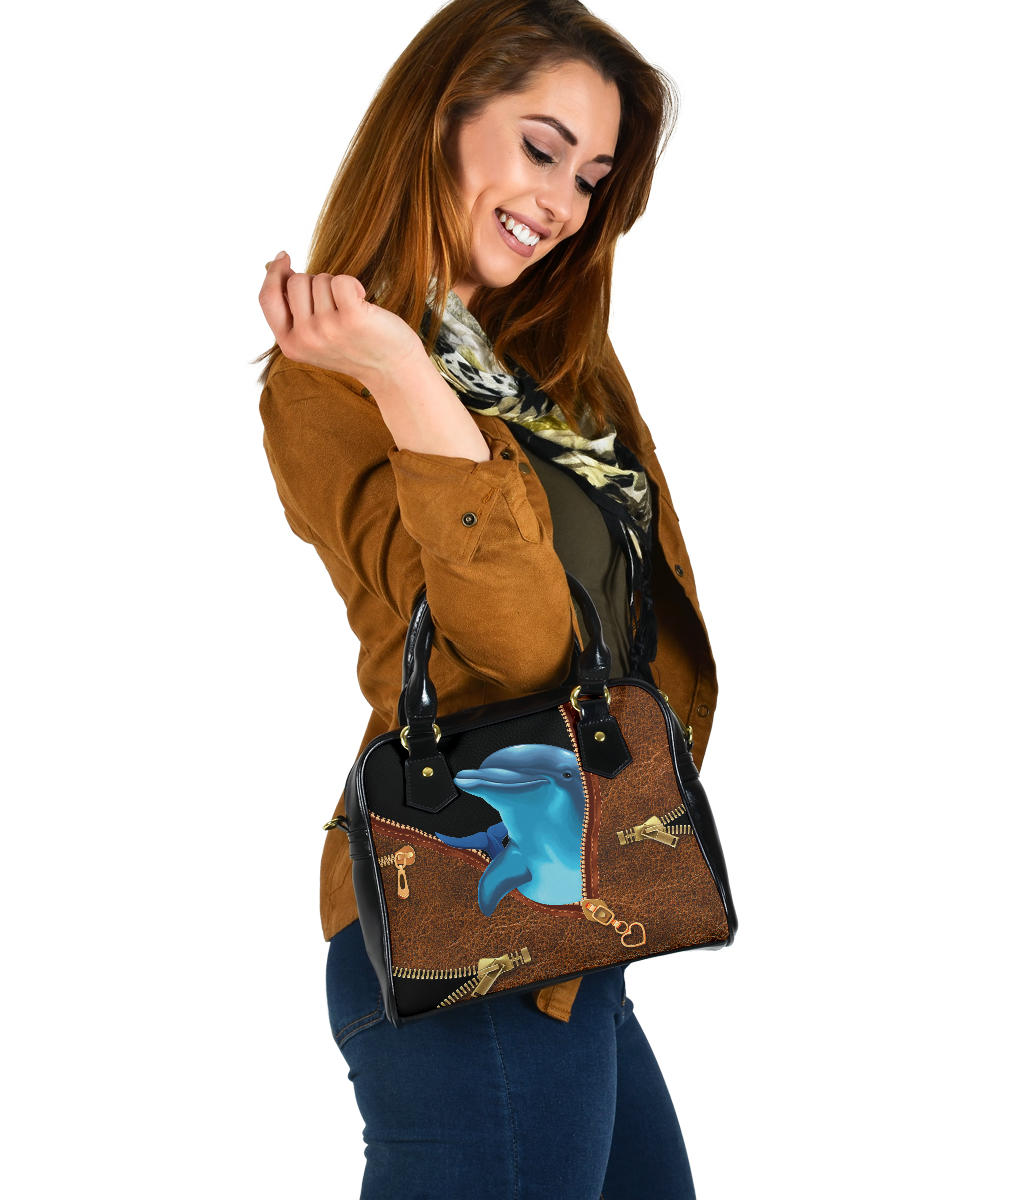 Dolphin Brown Leather Shoulder Handbag